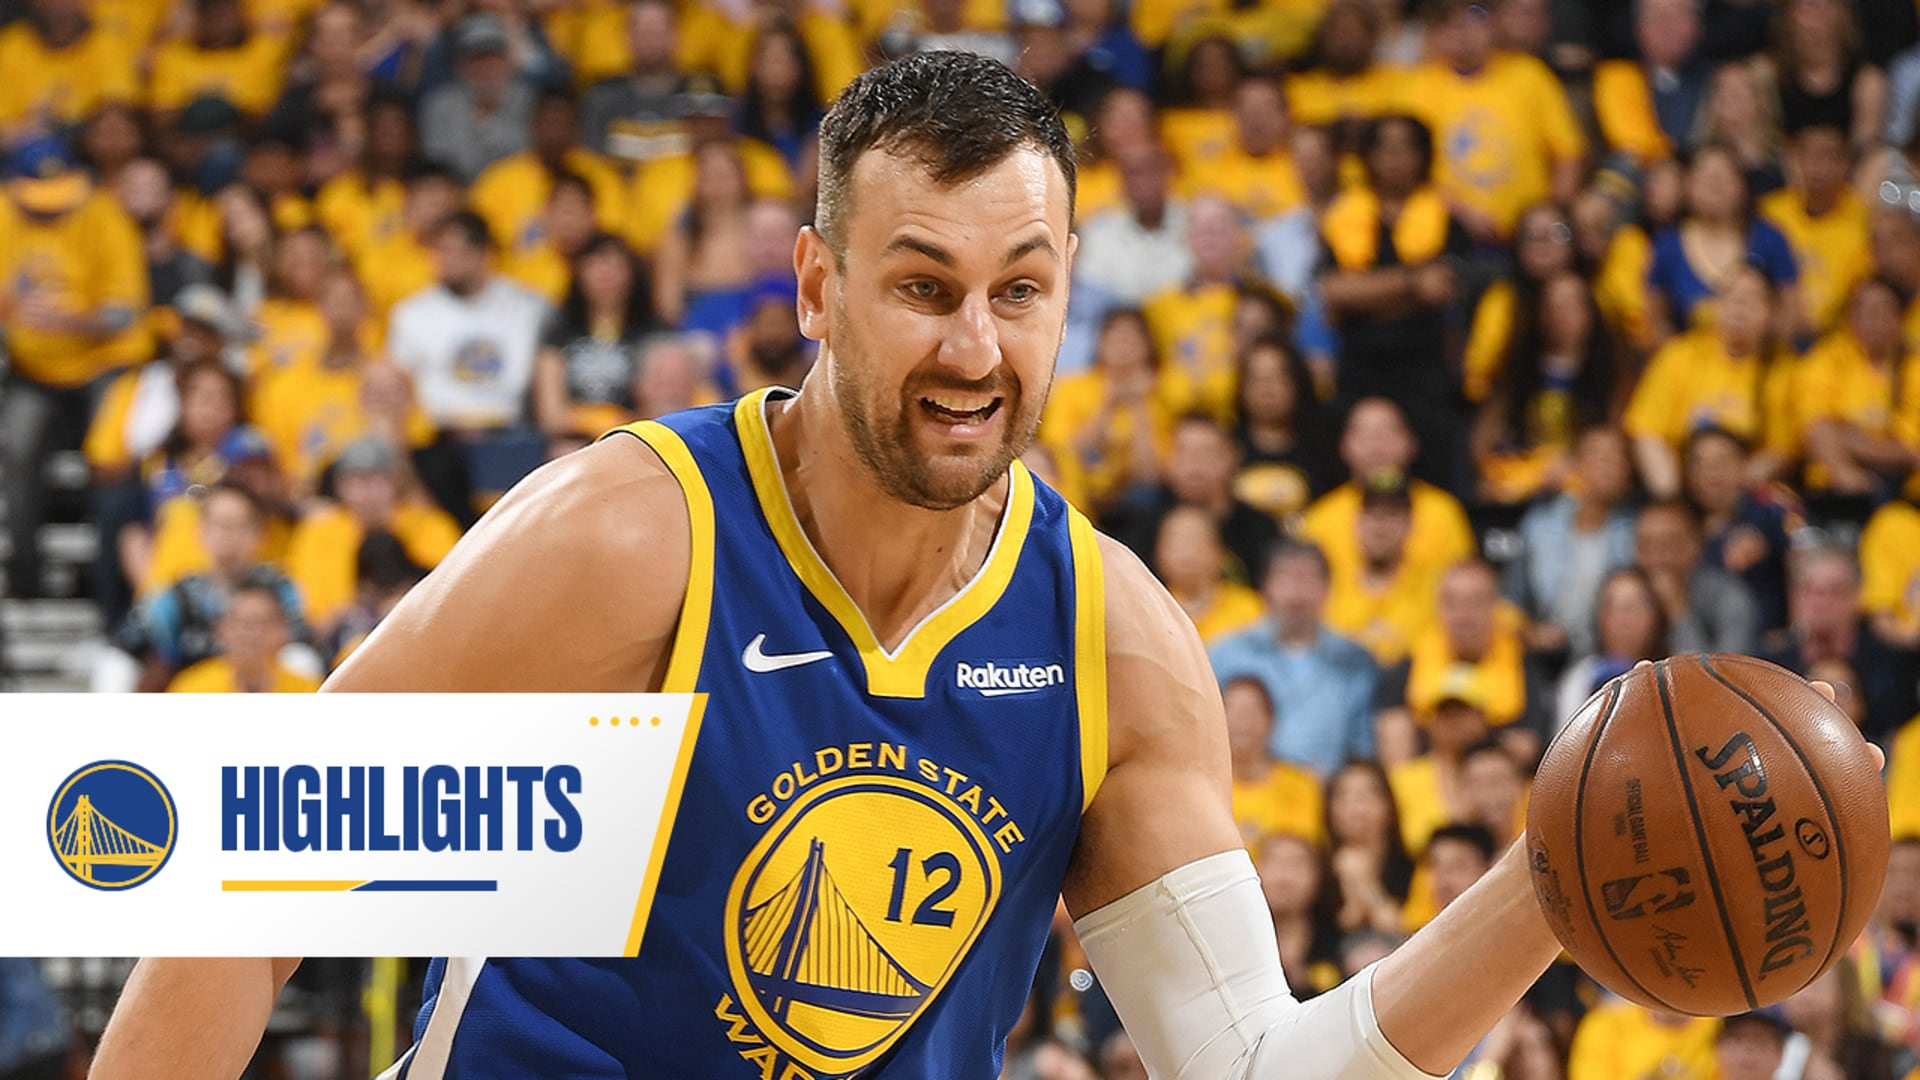 Best of Andrew Bogut's Dishes and Dimes